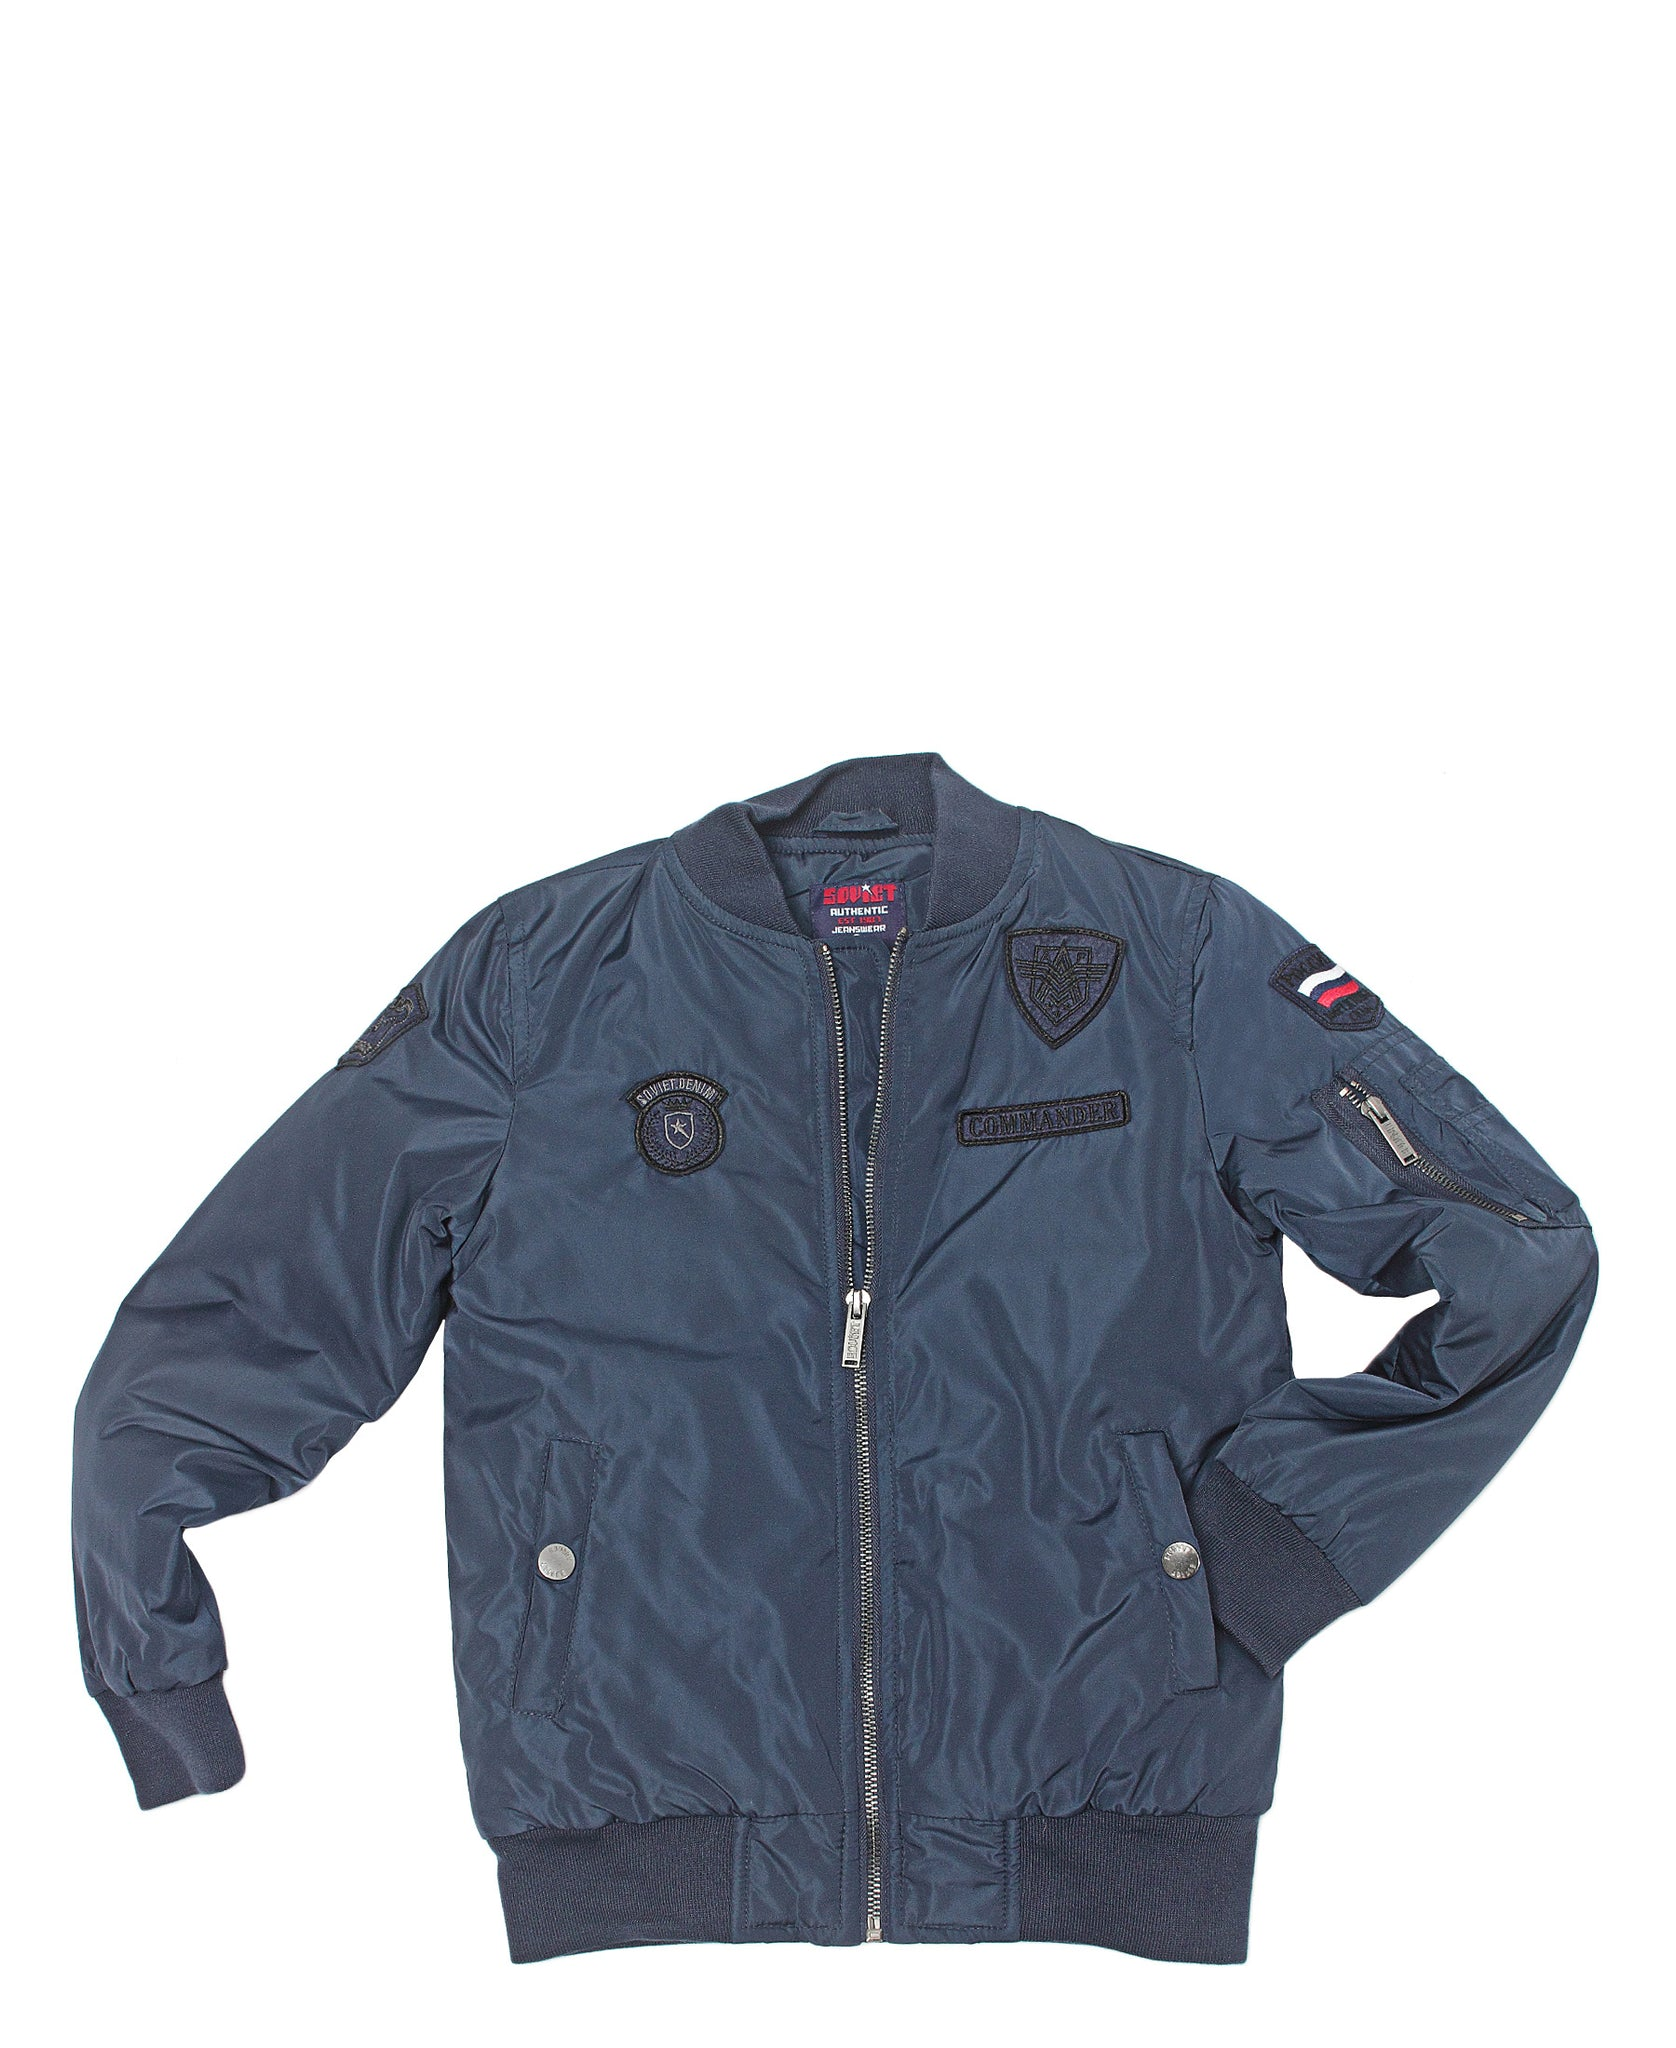 Boys Quito Bomber Jacket - Blue